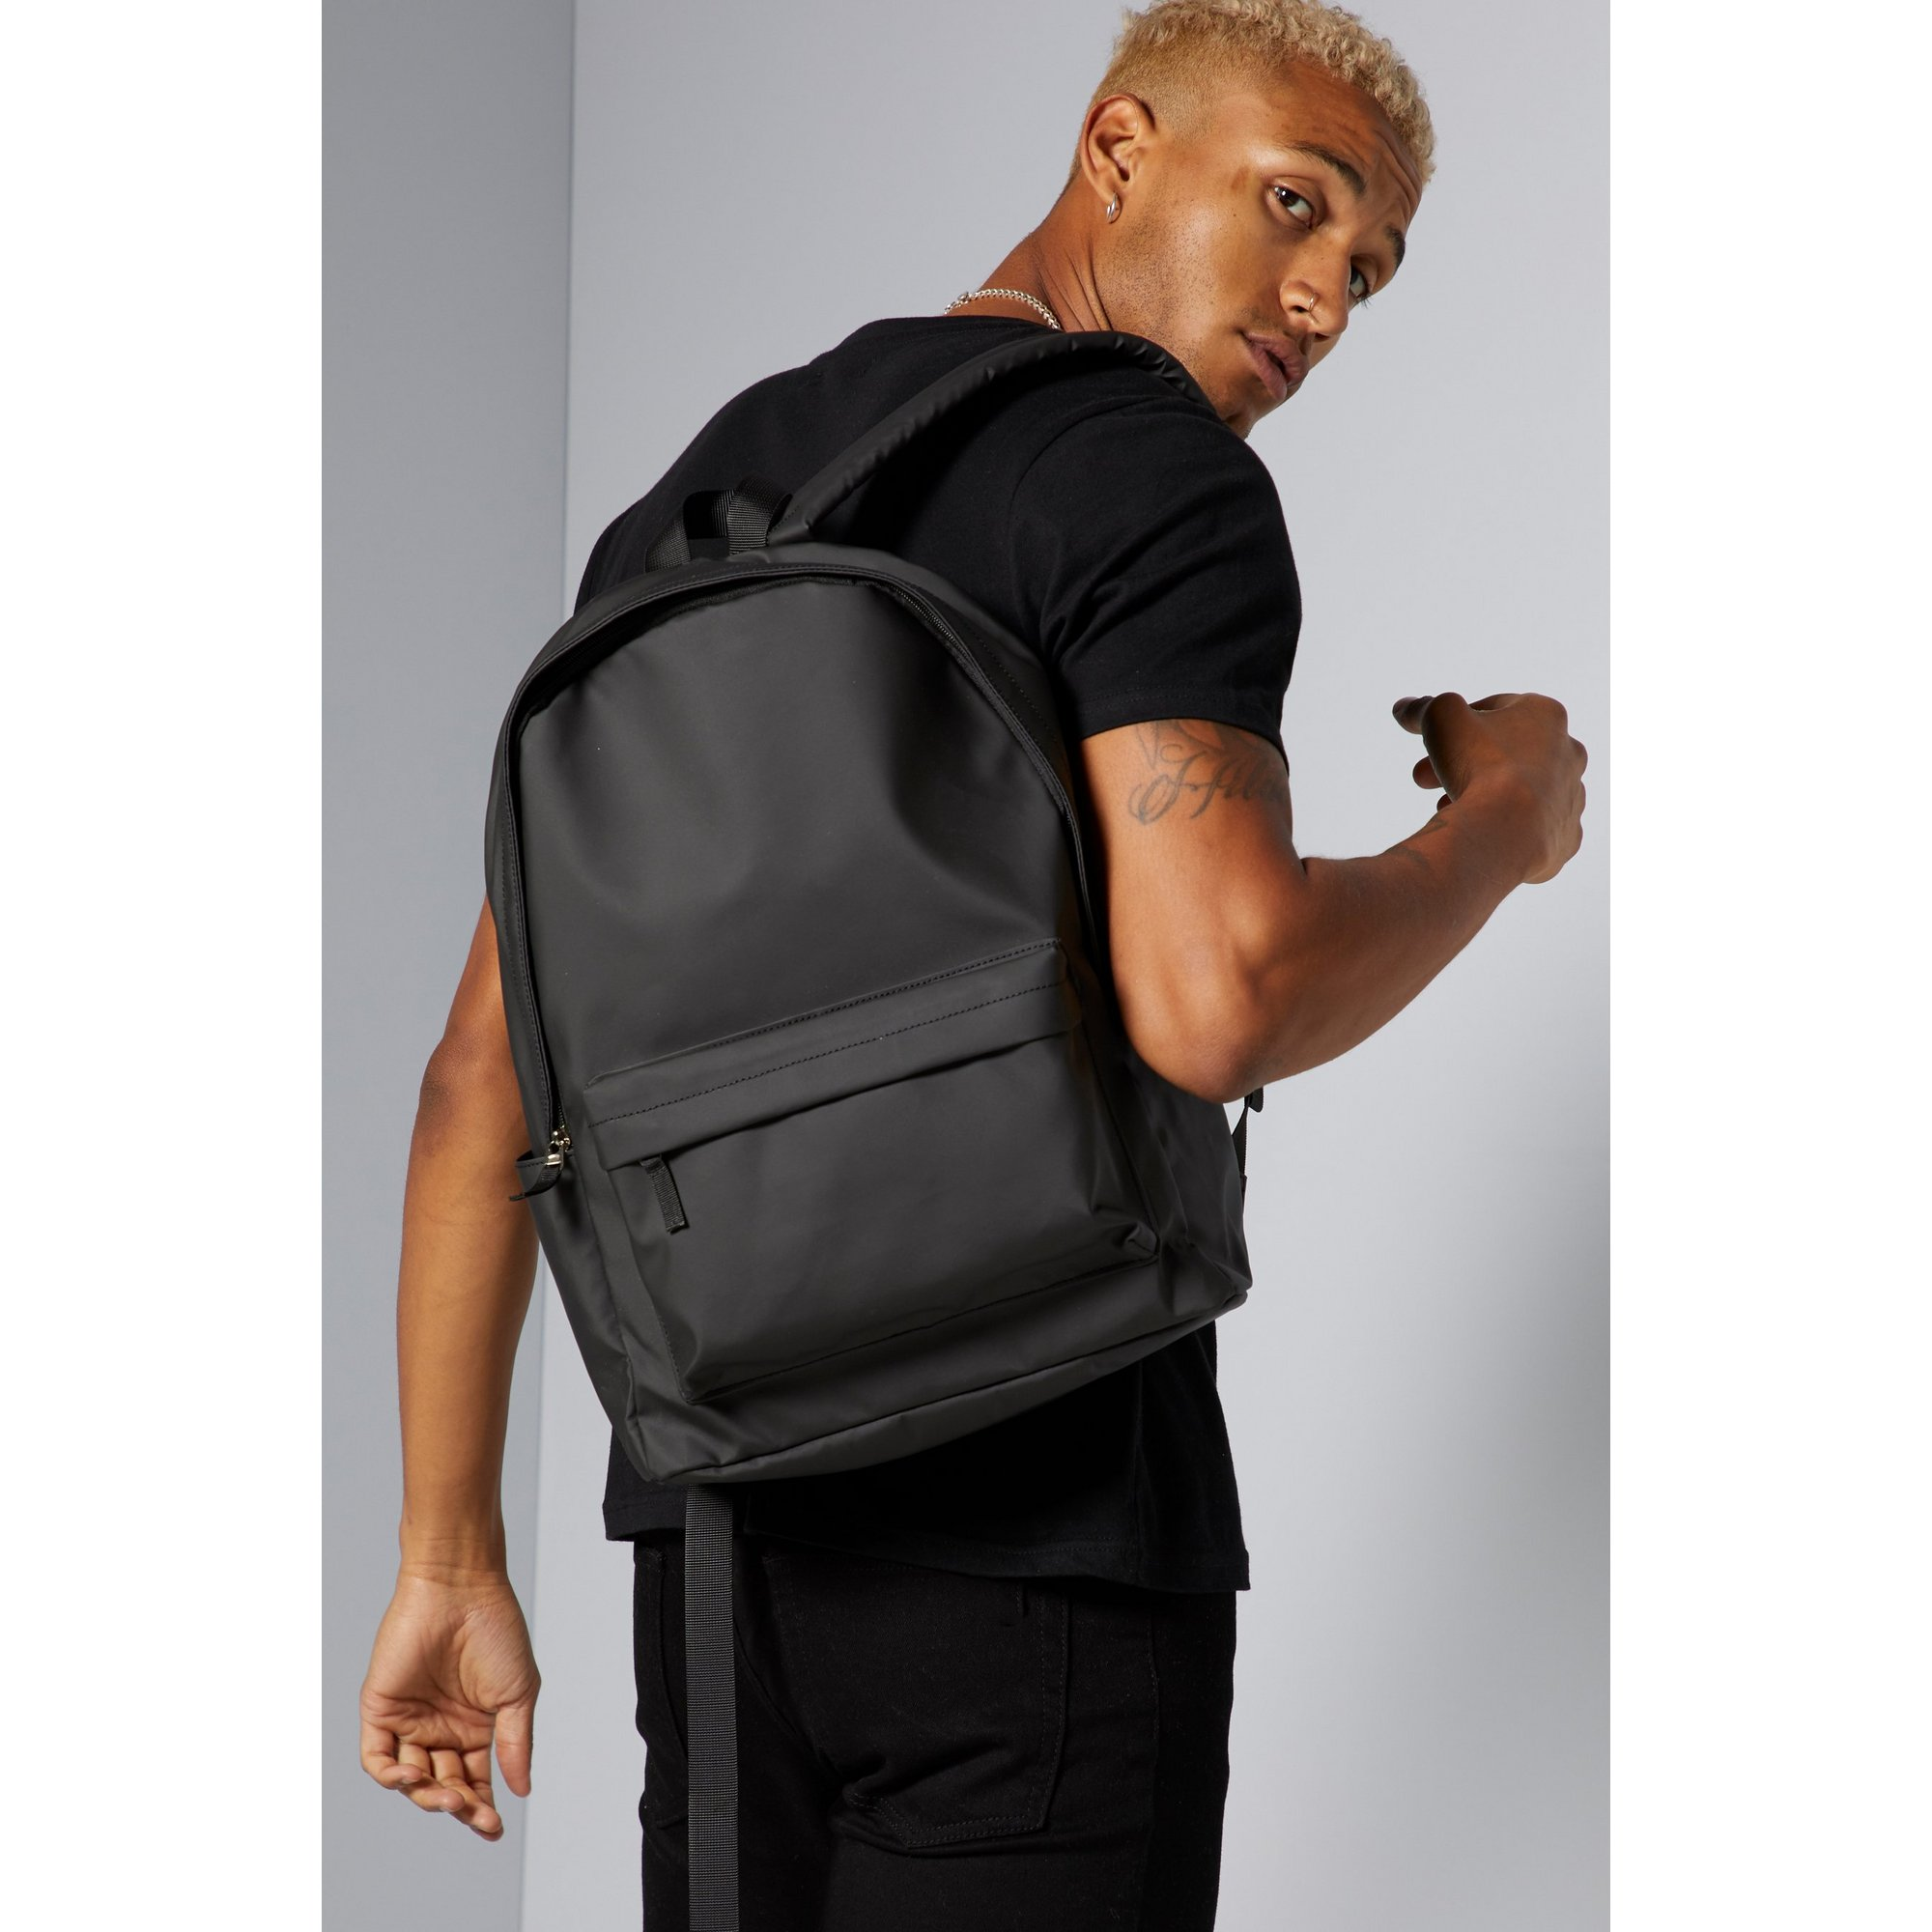 Image of Black Core Backpack